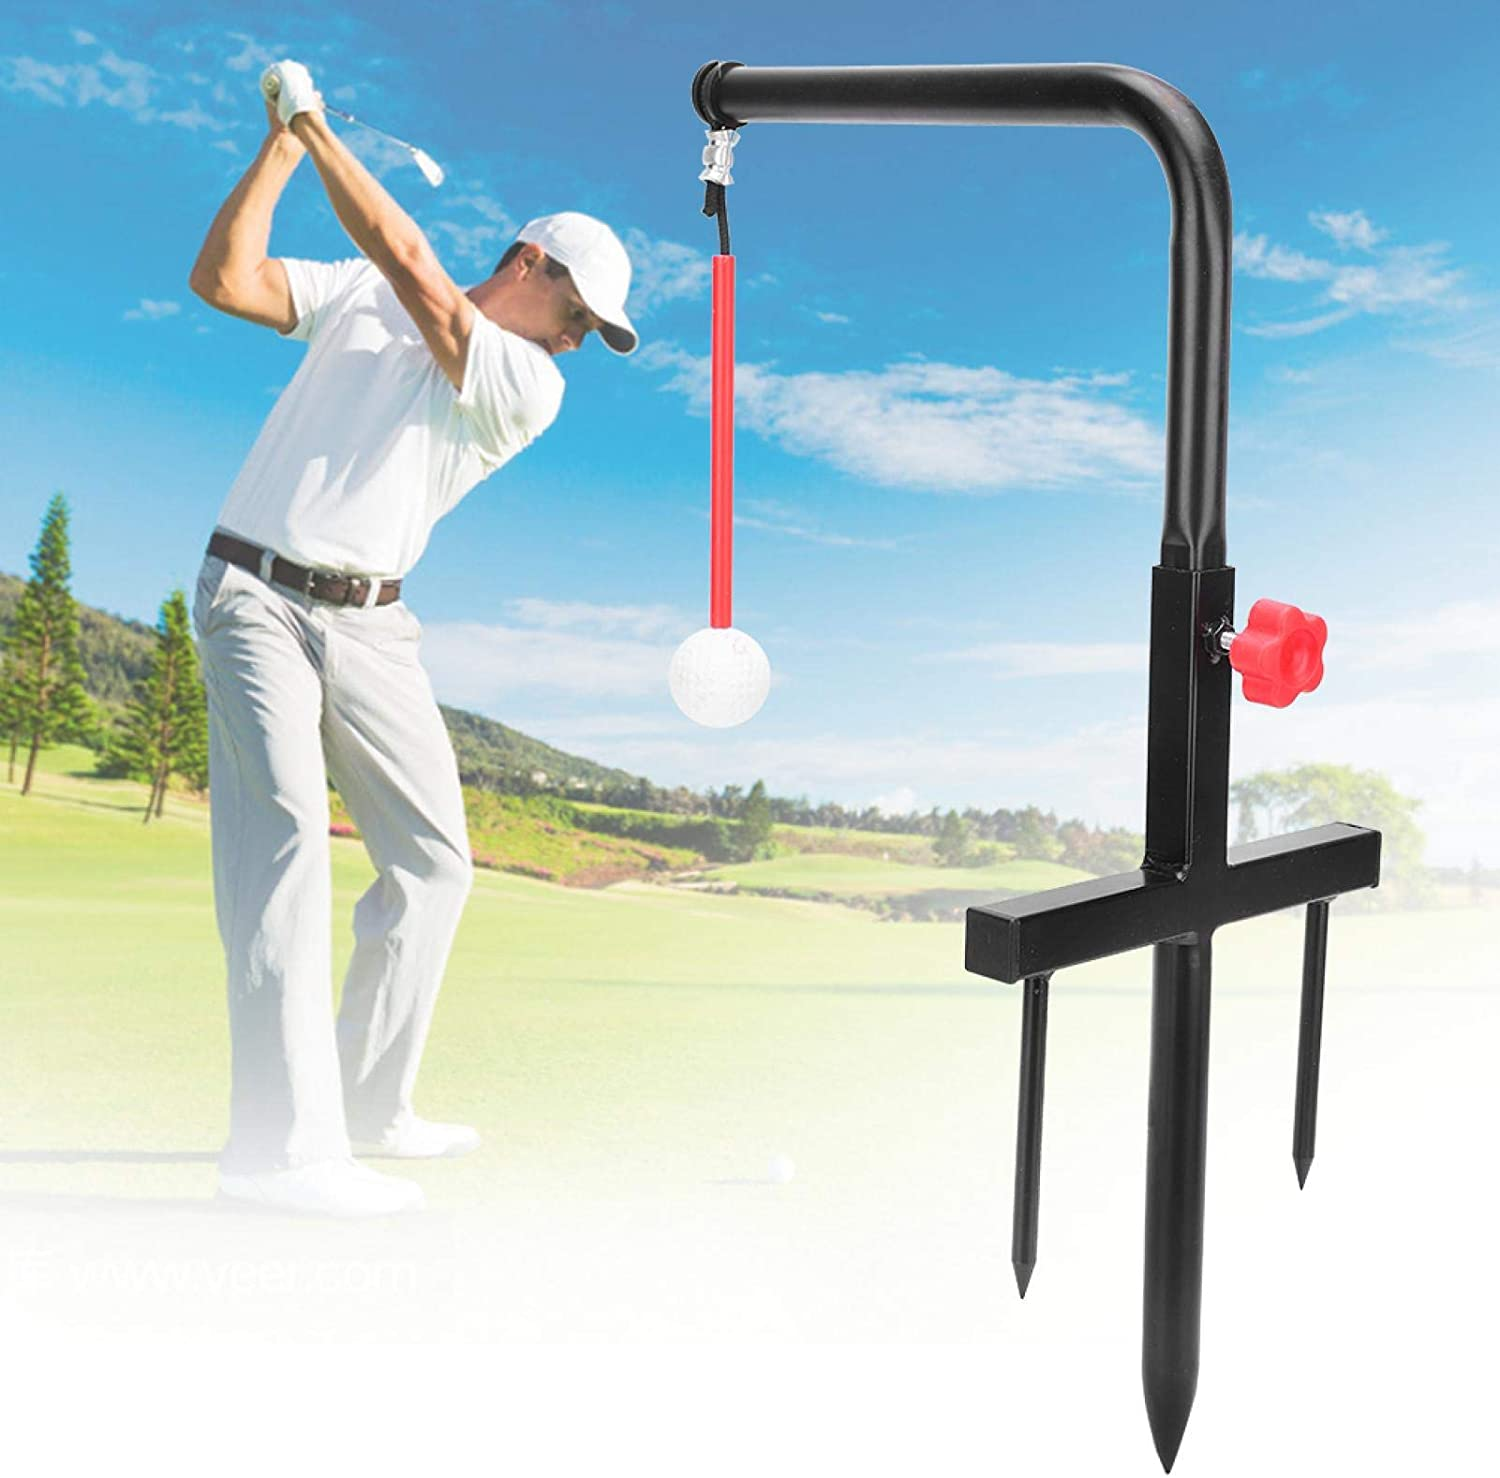 XQAQX Golf Swing Trainer Practice Swi Portable Hitting High Limited time cheap sale order